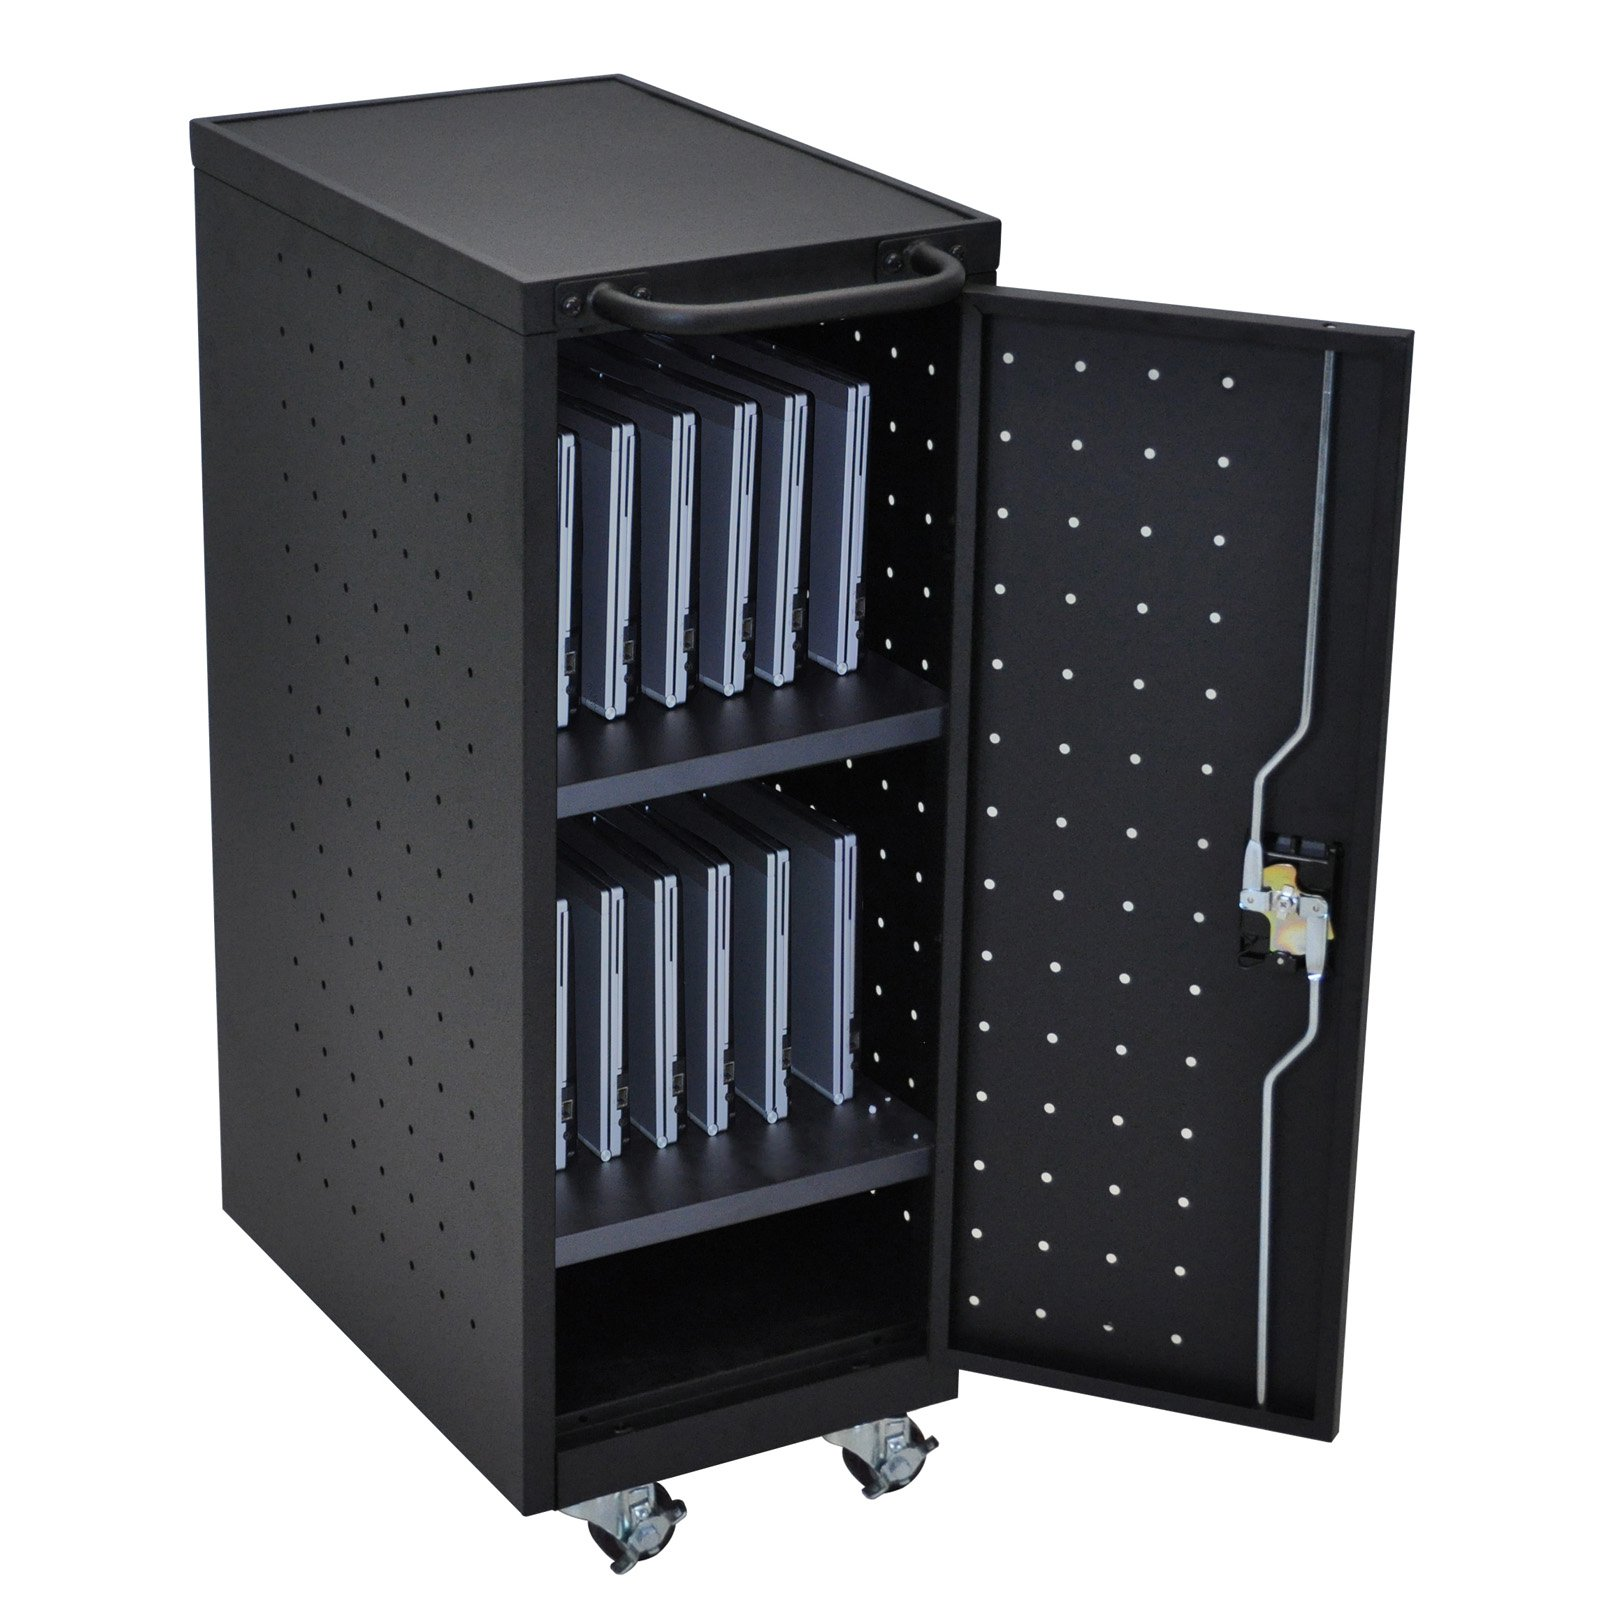 Luxor 12-Tablet/Chromebook Charging Cart with 12-Outlet 120V/15A Vertical Power Strip